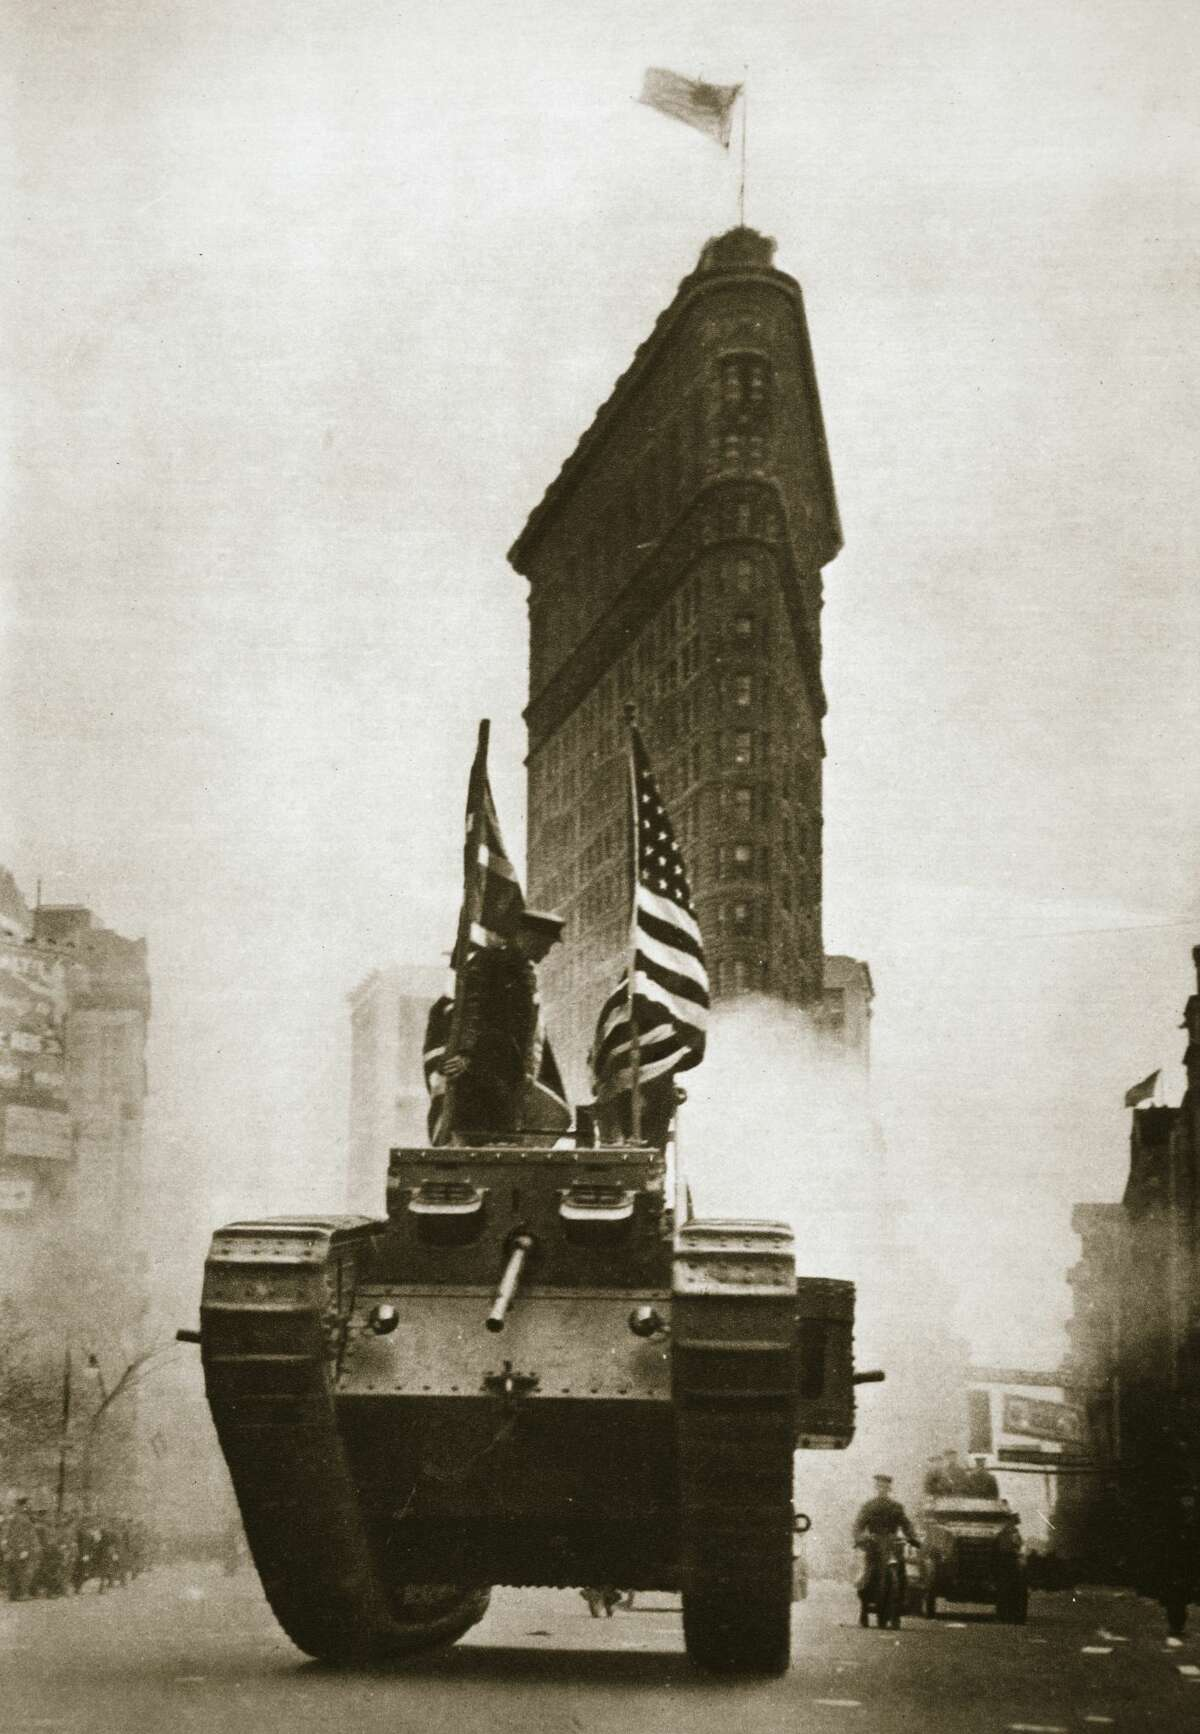 British tank 'Britannia' on Fifth Avenue, New York City, circa 1918. The tank was in New York to aid the Liberty Loan drive. Liberty Loans were war bonds sold in the United States from 1917-1918 to support the allied war effort. Americans were encouraged to buy the bonds as their patriotic duty and they raised around $17 billion.